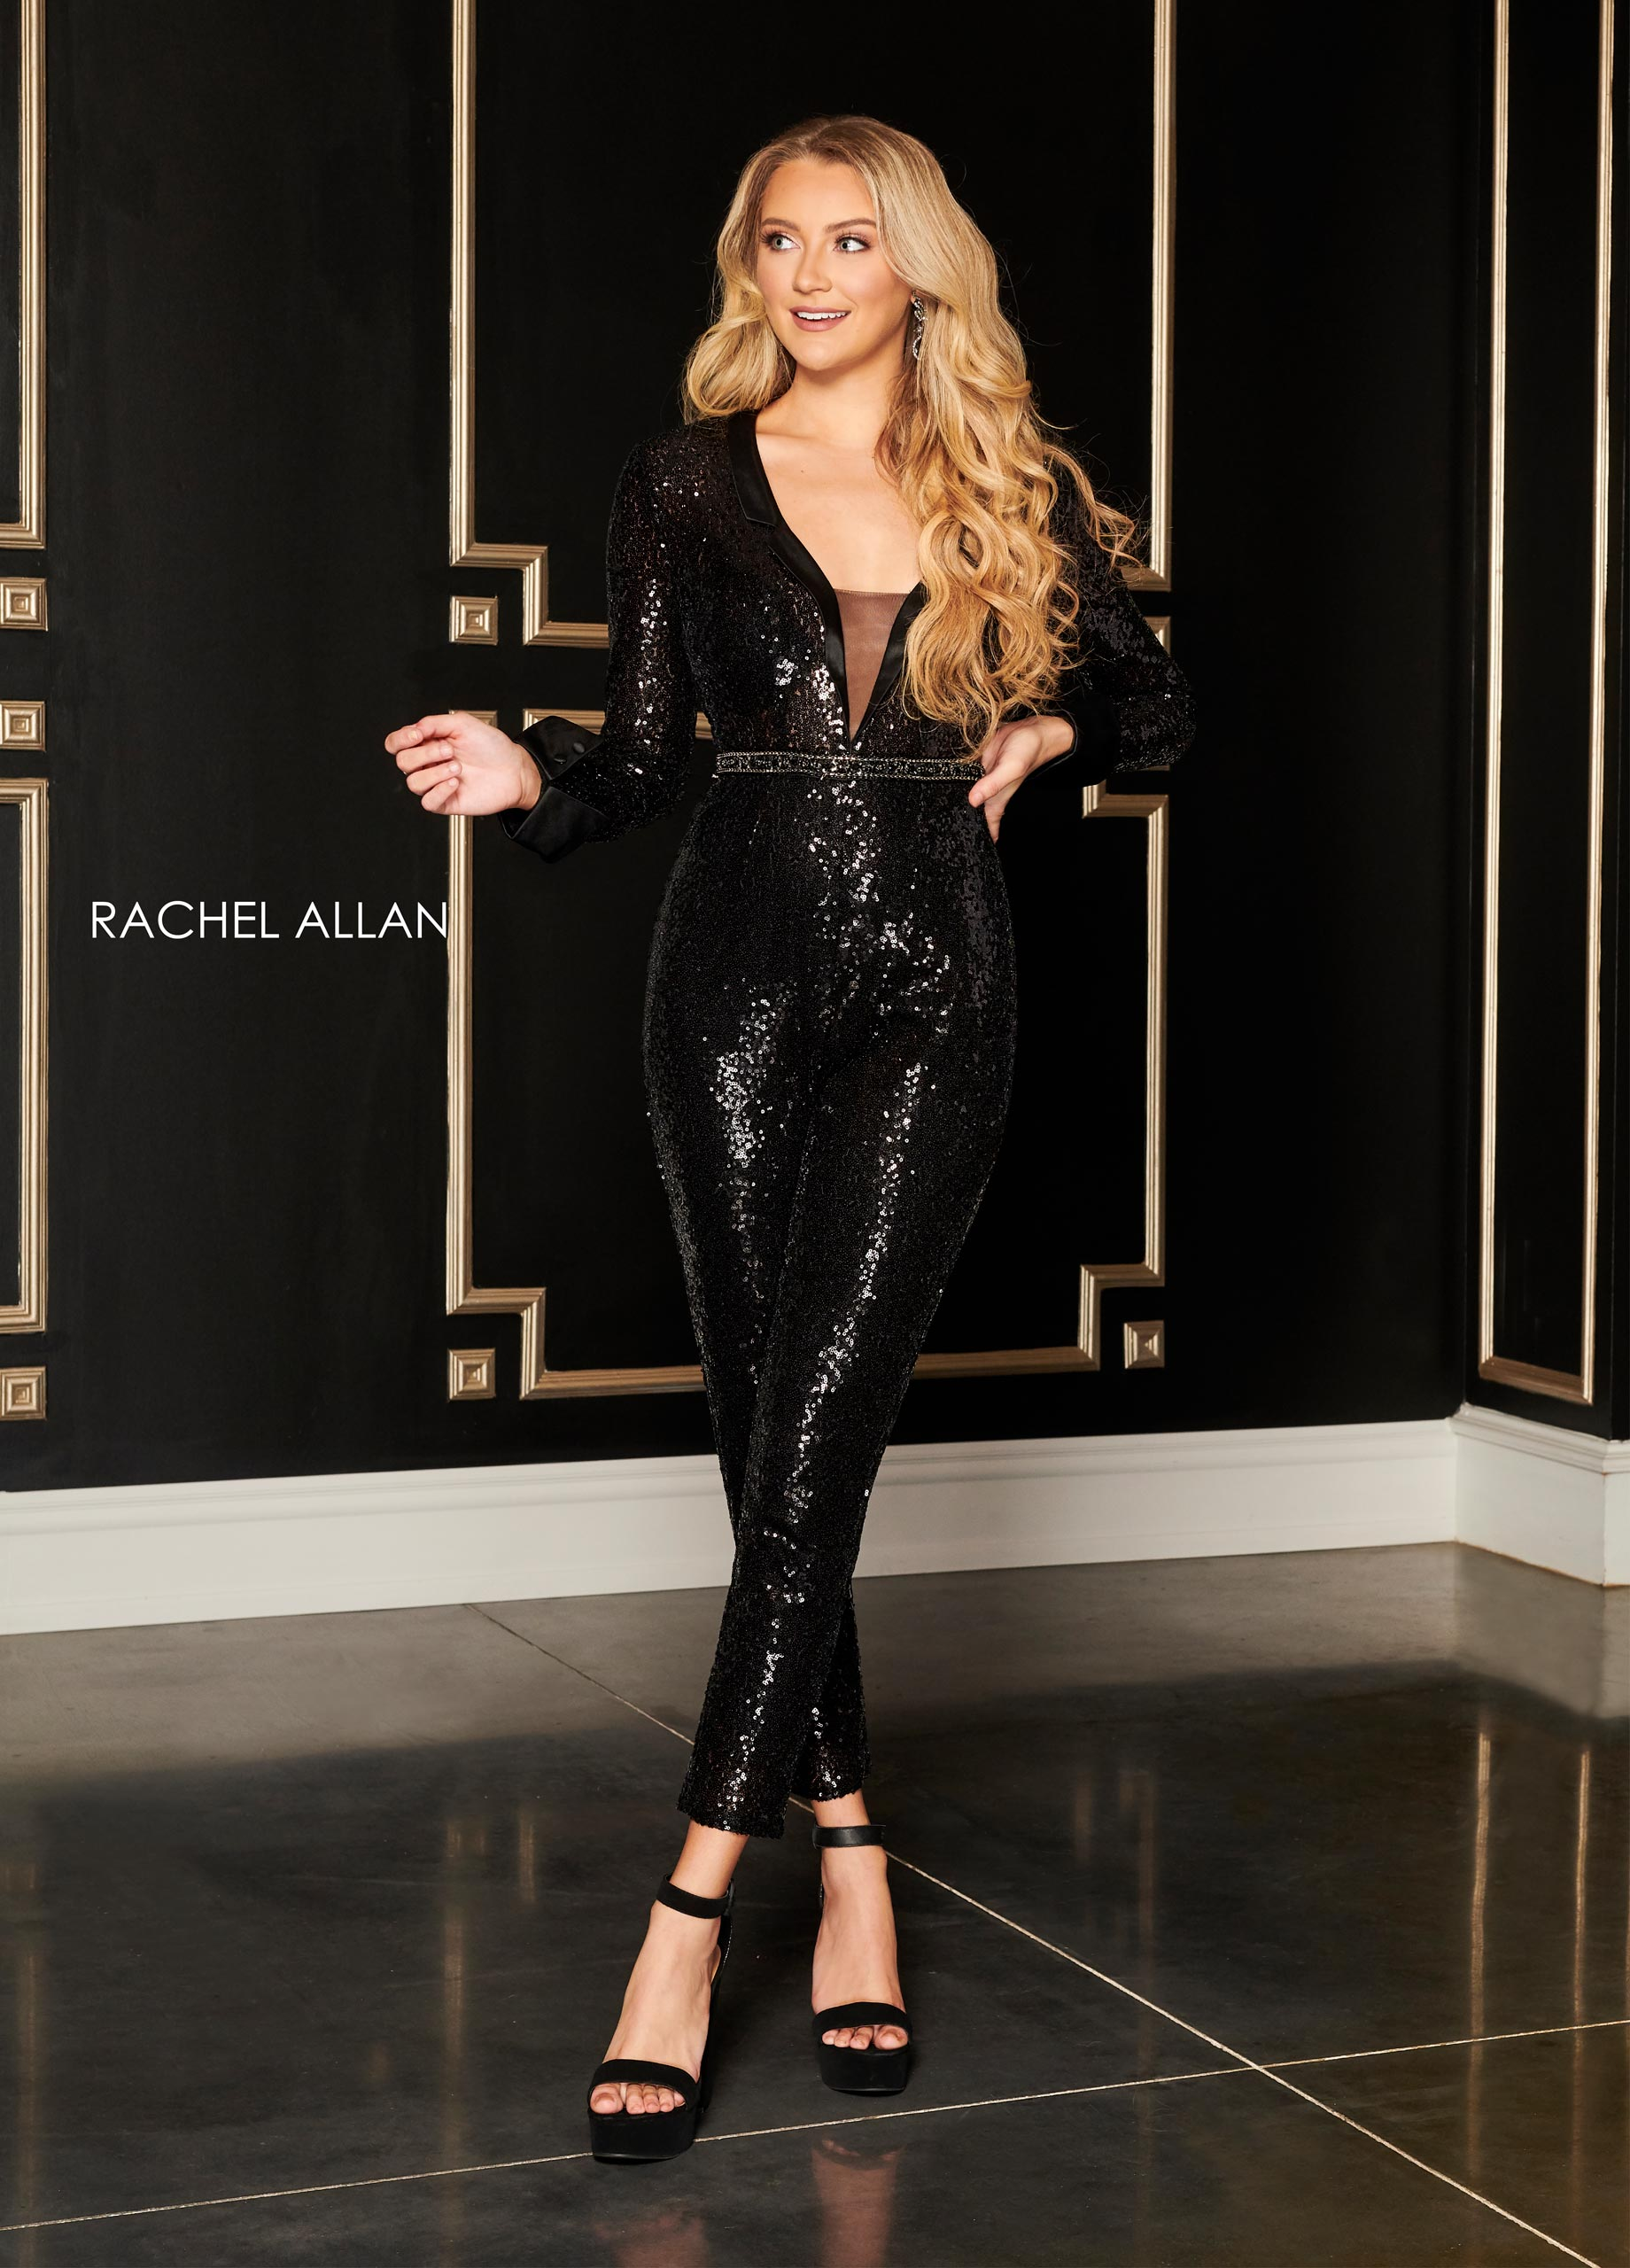 V-Neck Jumpsuit Cocktail Dresses in Black Color